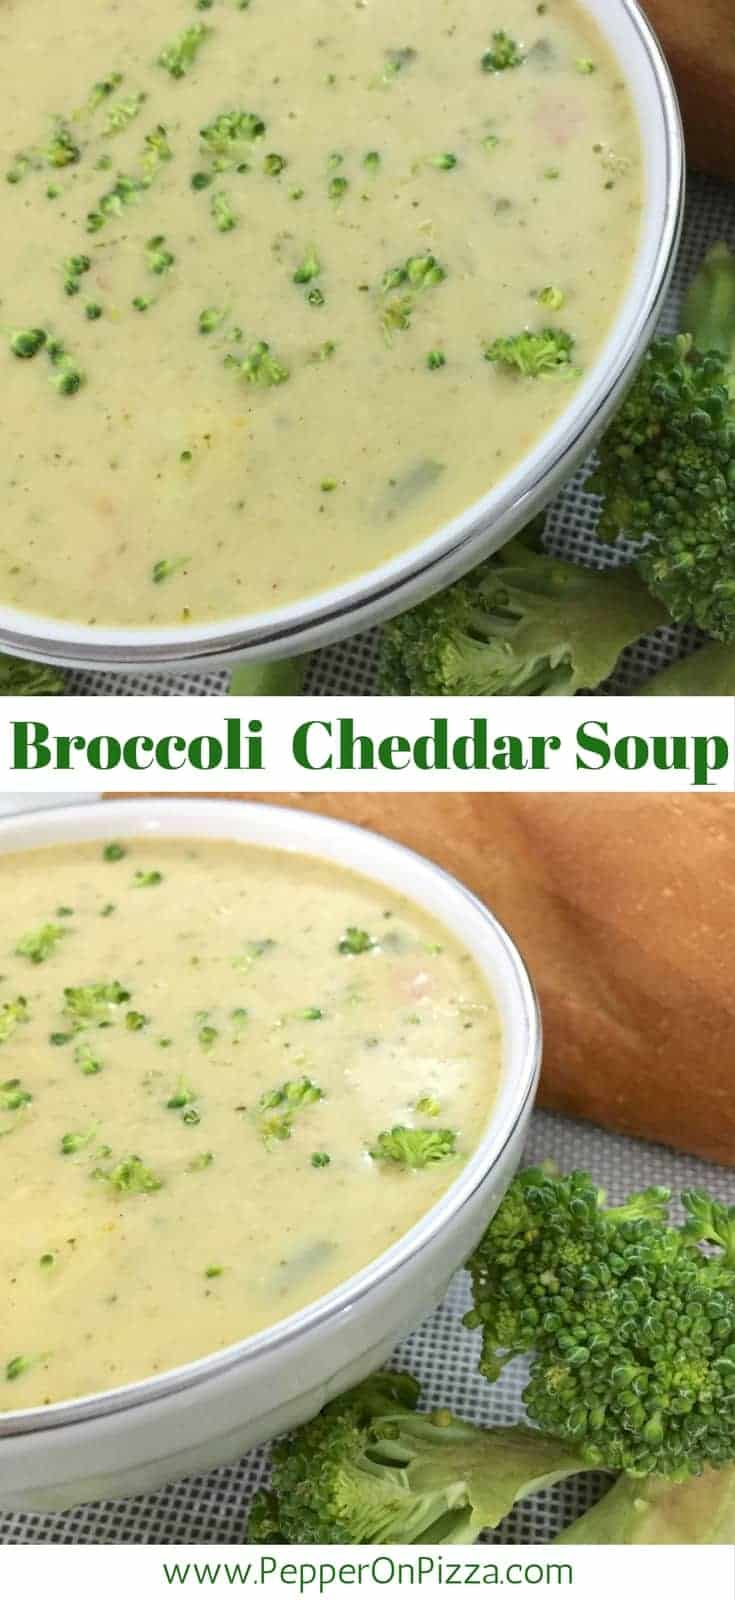 Thick pale Yellow broccoli cheddar soup flecked with green bits of broccoli and herbs in a white bowl, broccoli florets at the side and a baguette seen in the background